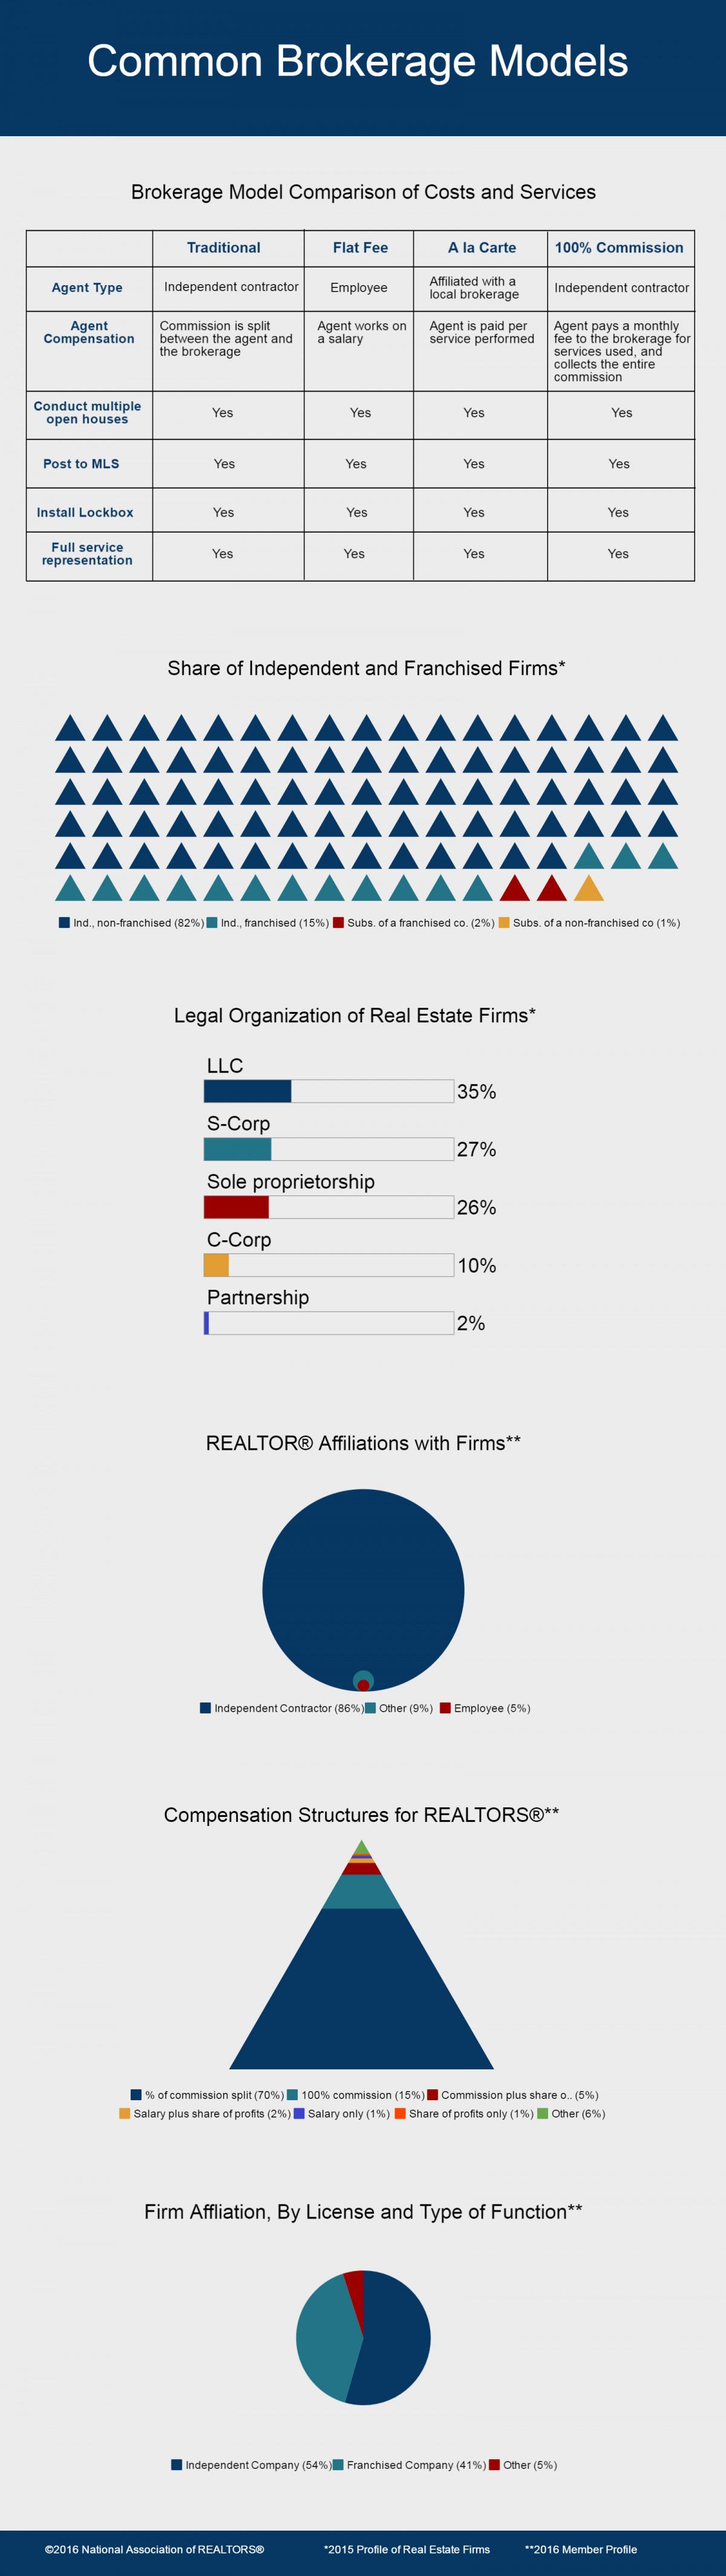 Common brokerage models as discussed in the 2016 NAR member profile and 2015 profile of real estate firms.